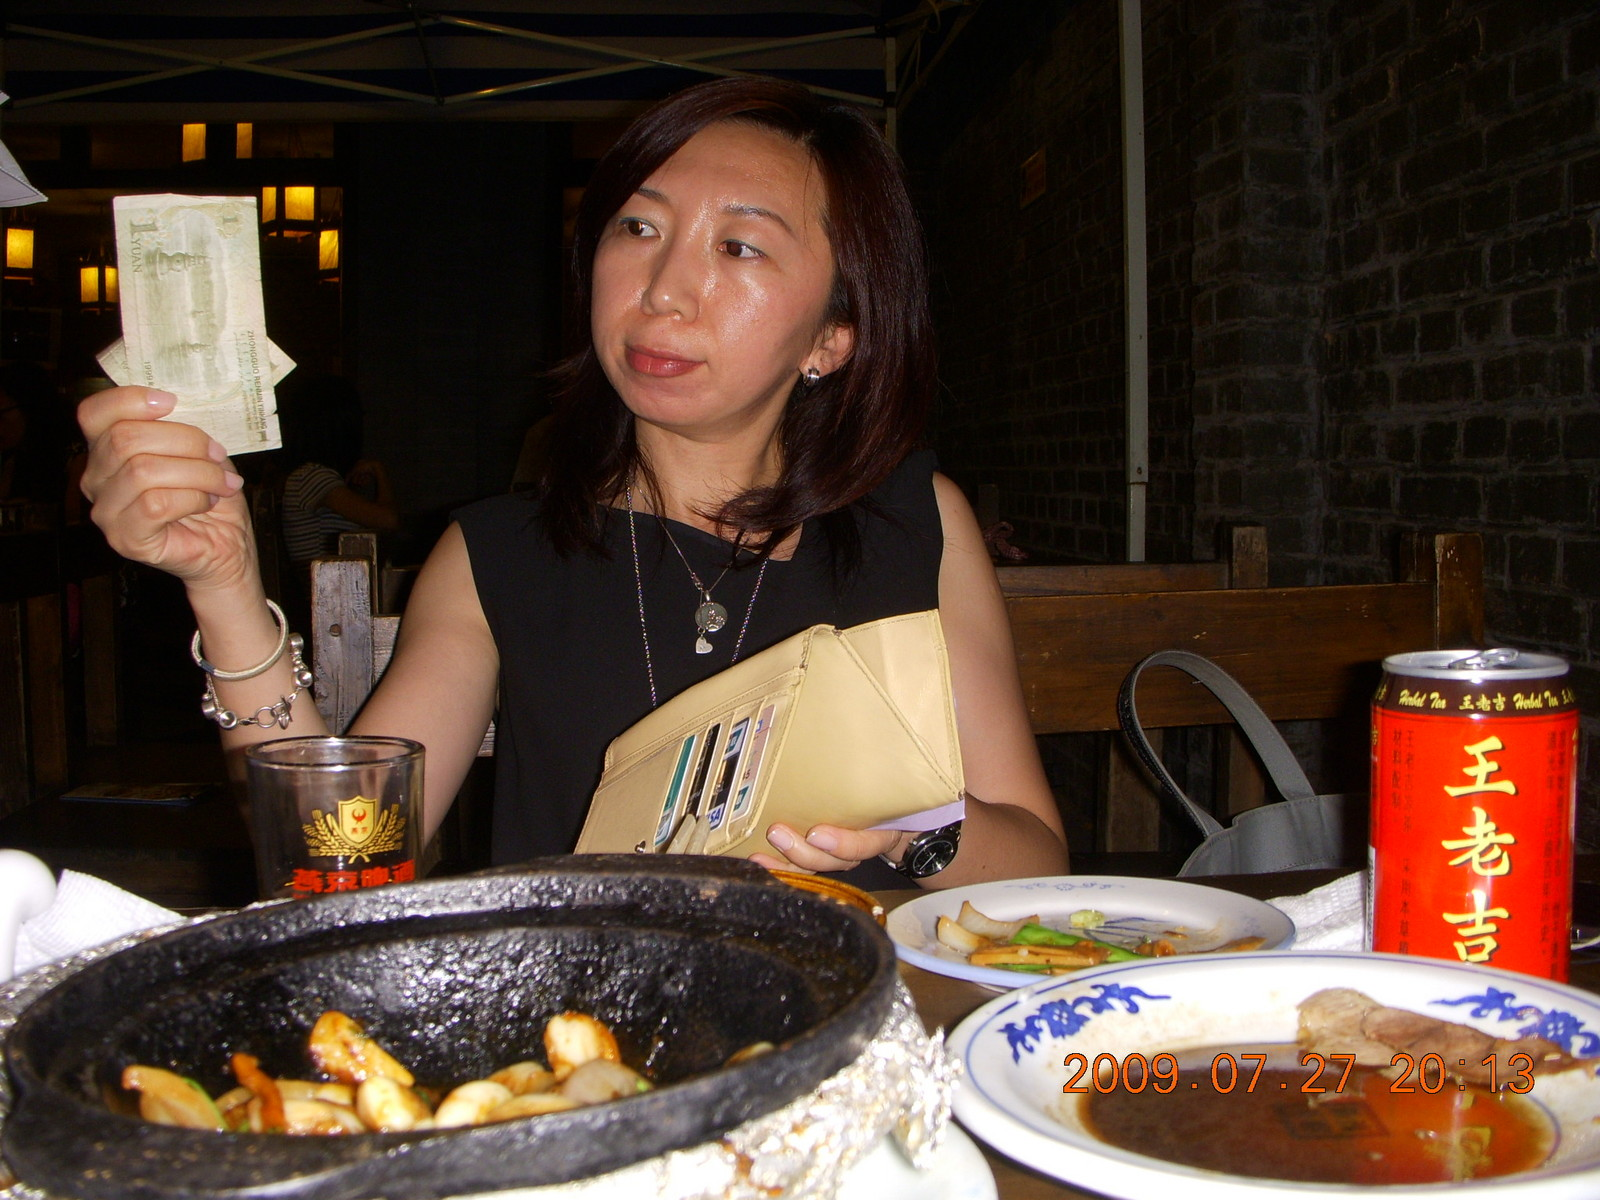 China eclipse - Beijing - dinner with Sonia